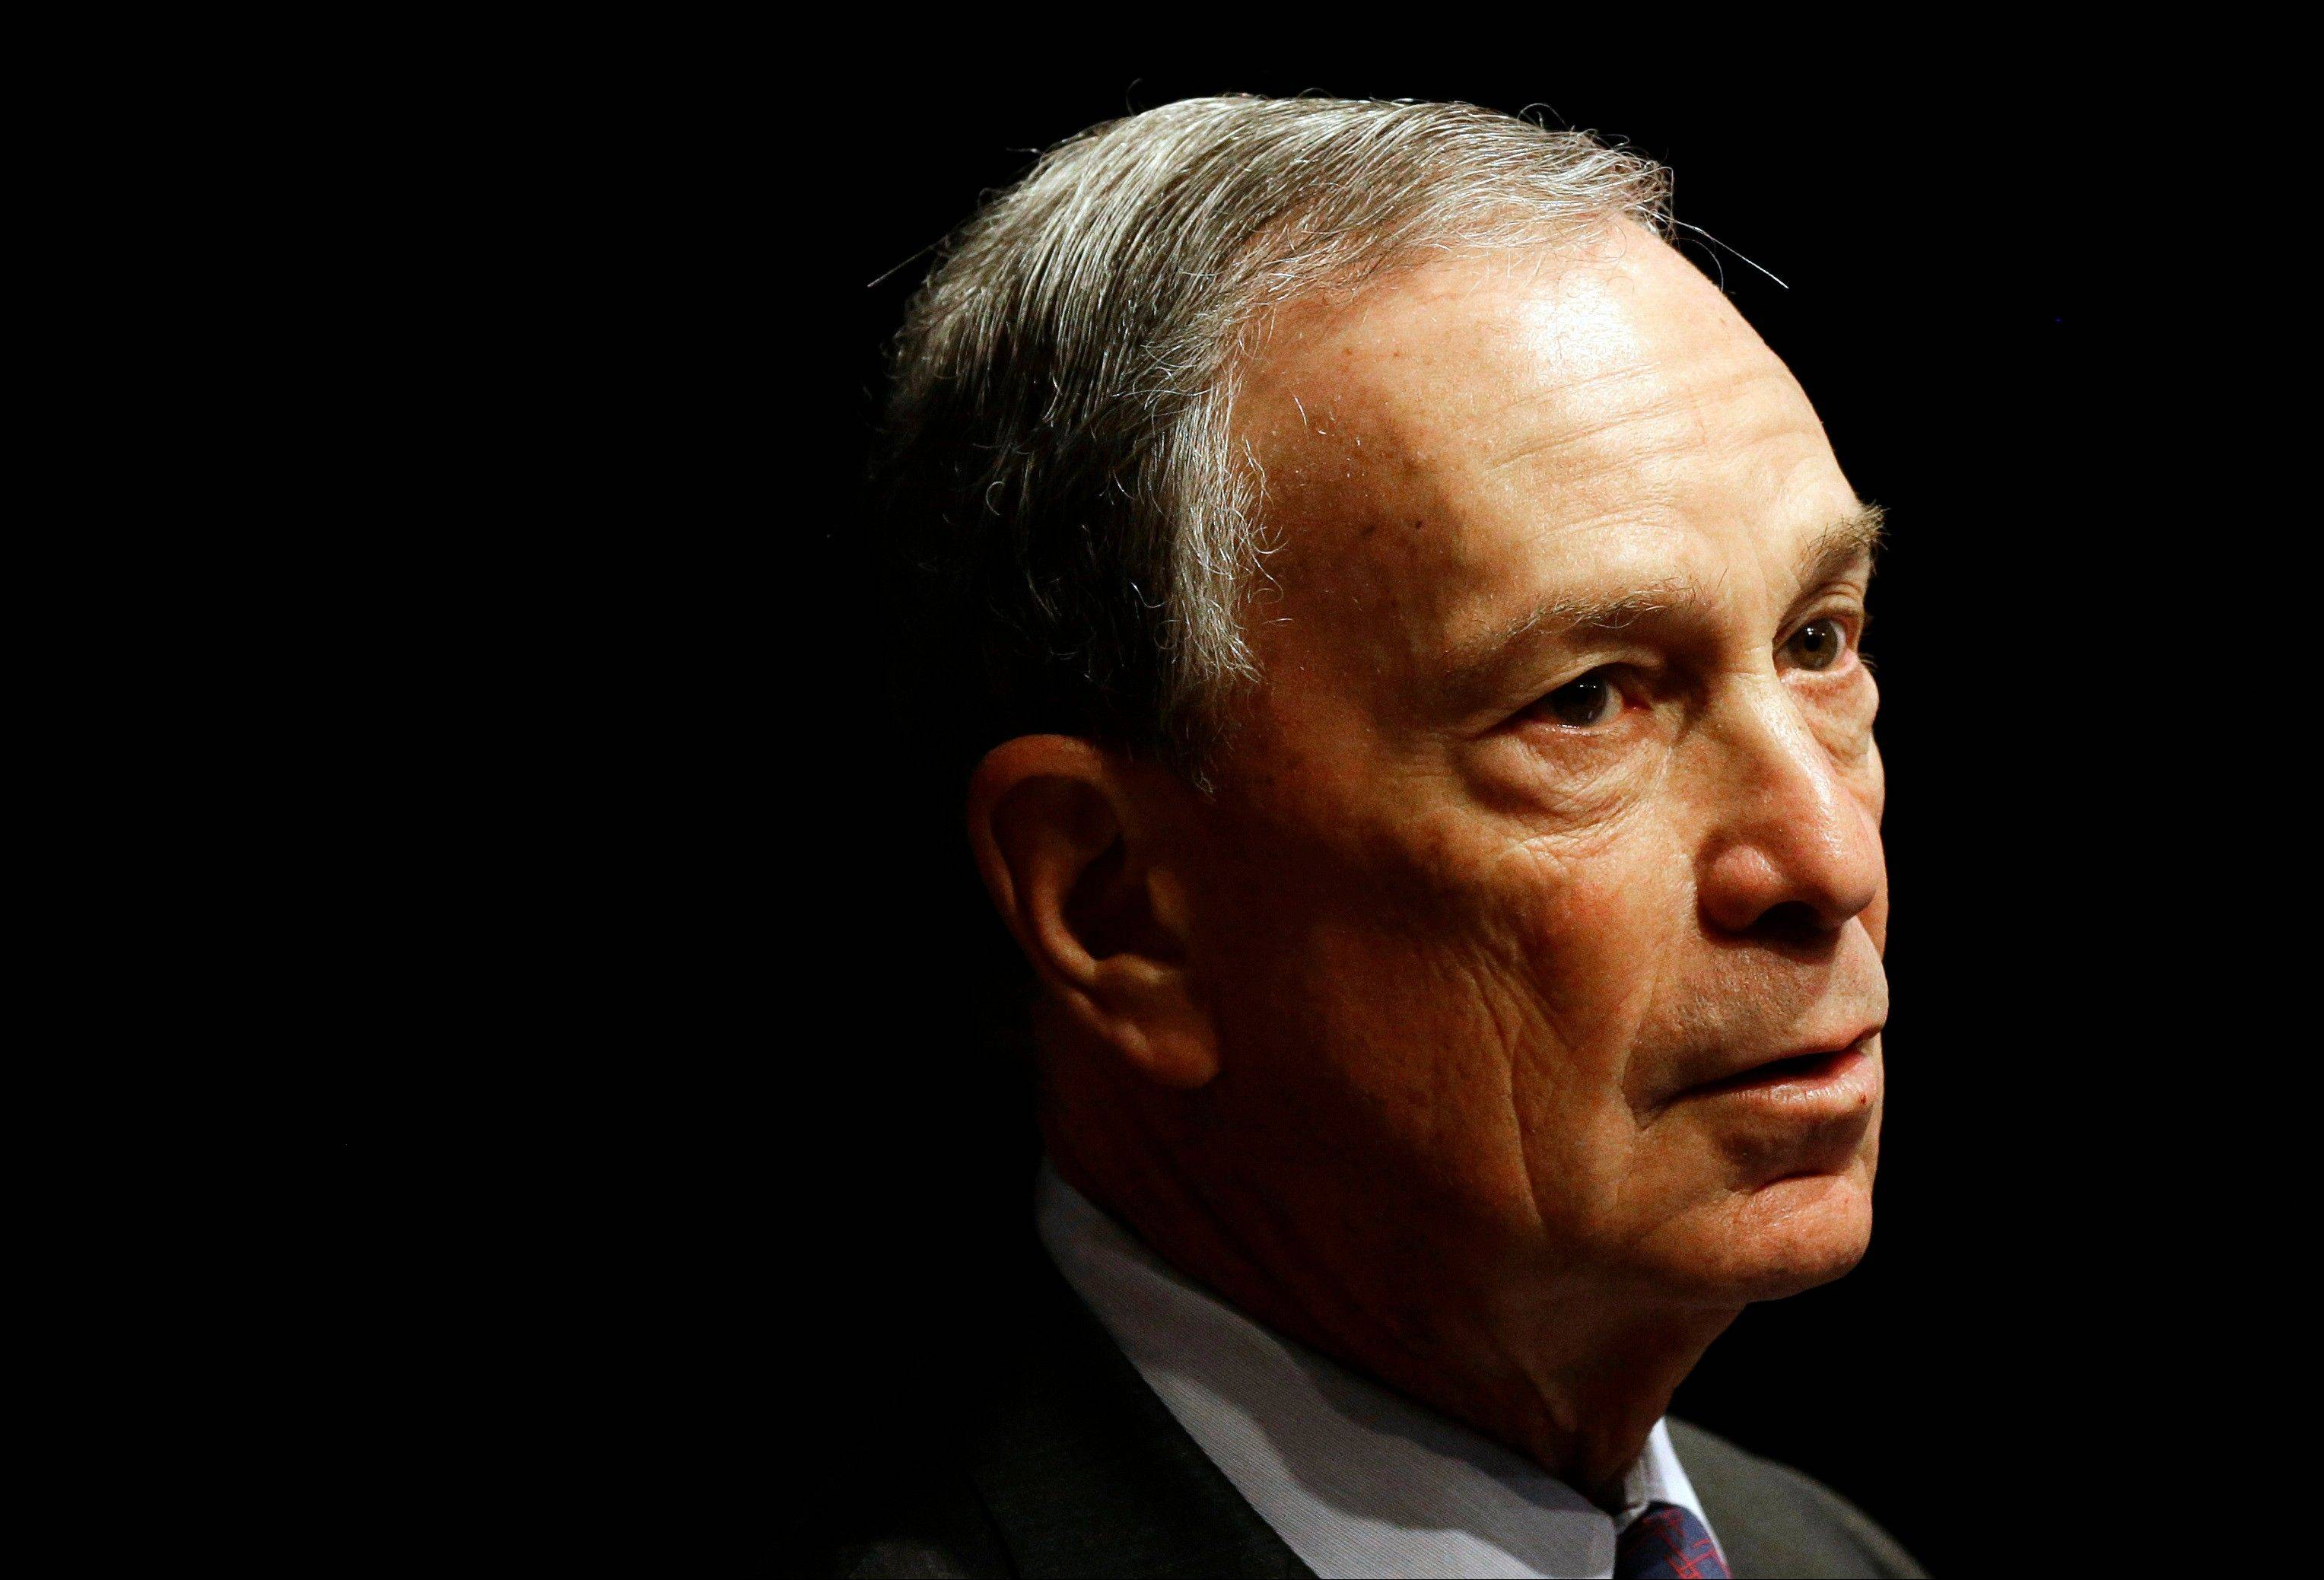 New York City Mayor Michael Bloomberg. Police said threatening letters containing traces of the poison ricin were opened Friday, May 24, 2013 at New York City's mail sorting facility and Sunday, May 26, in Washington at the headquarters of the nonprofit started by Bloomberg, Mayors Against Illegal Guns. Both were addressed to Bloomberg and contained threats referencing the debate on gun laws.